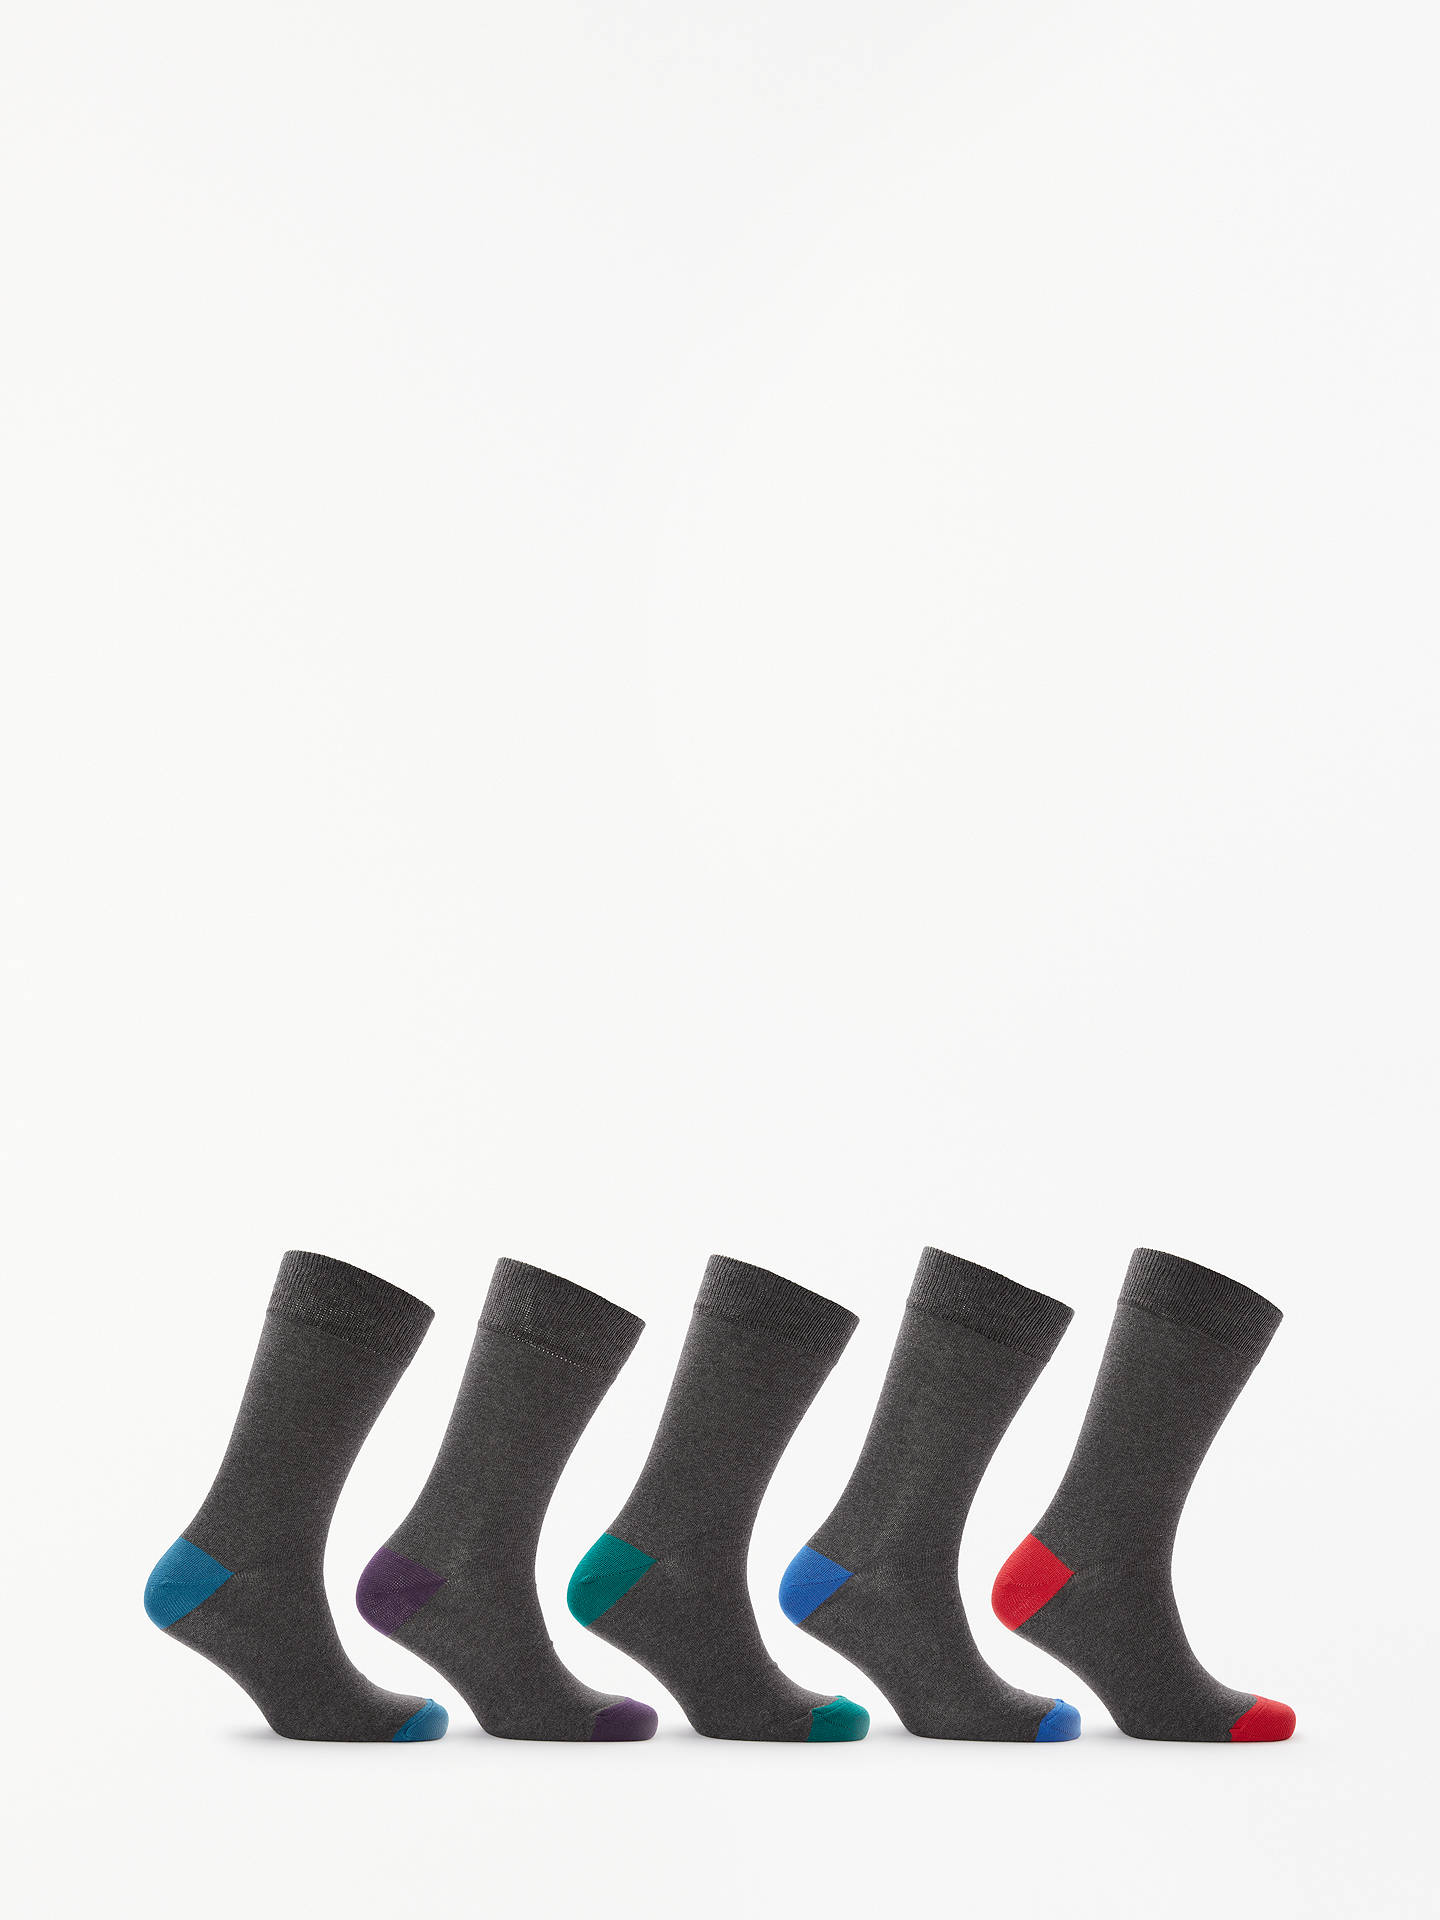 Buy John Lewis & Partners Fashion Heel and Toe Socks, Pack of 5, Multi, L Online at johnlewis.com